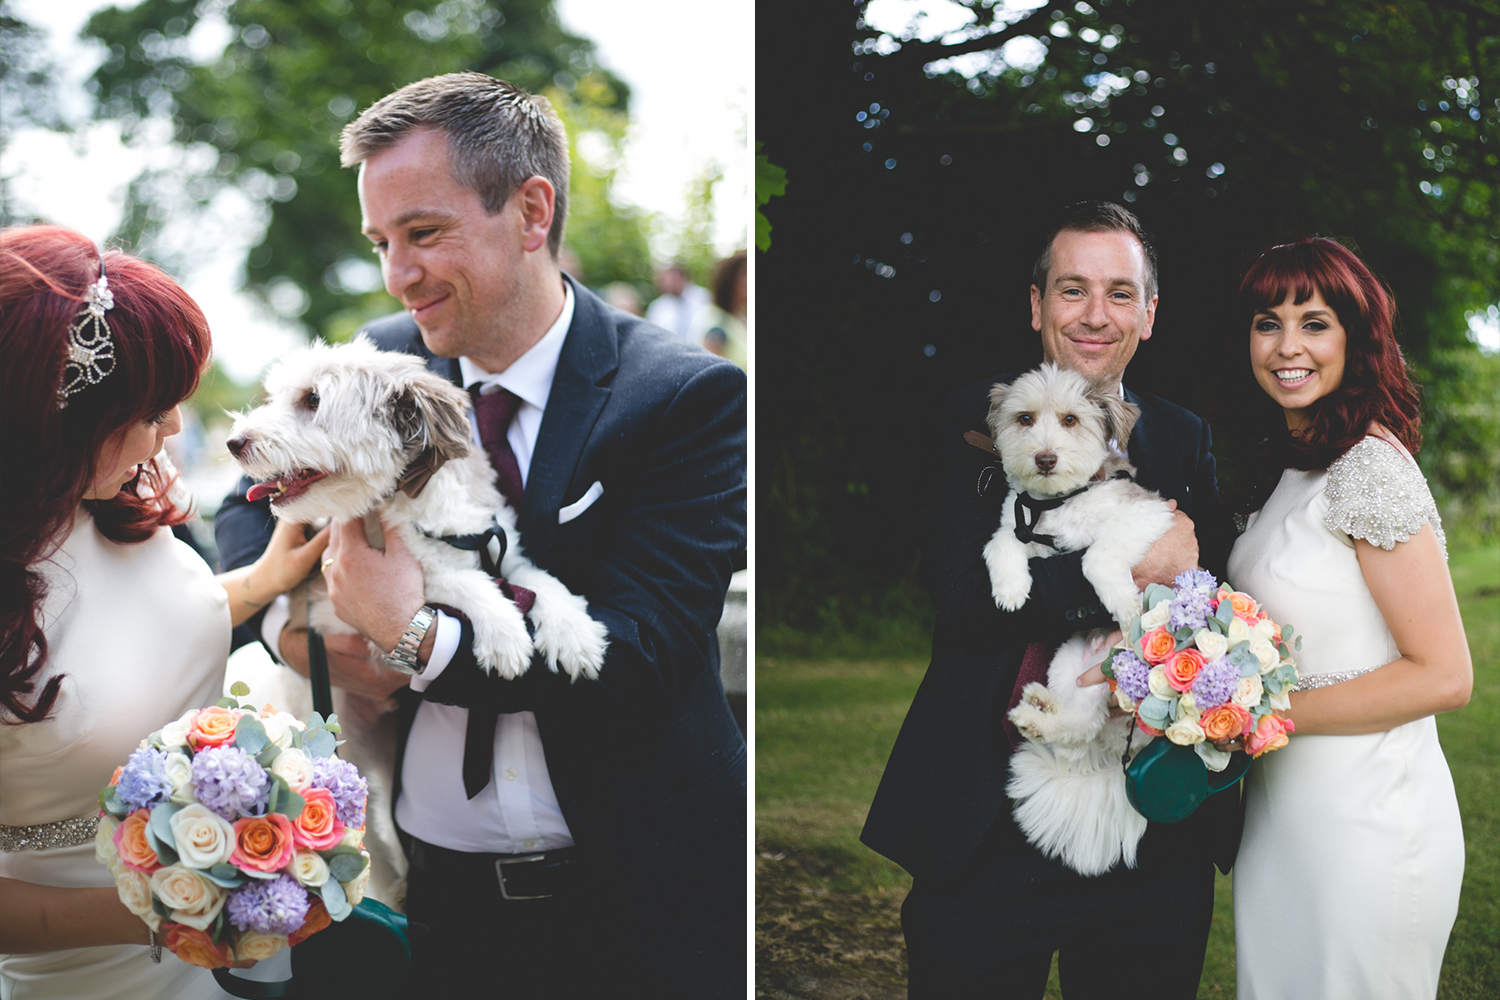 Bride and groom and dog pose for wedding portraits